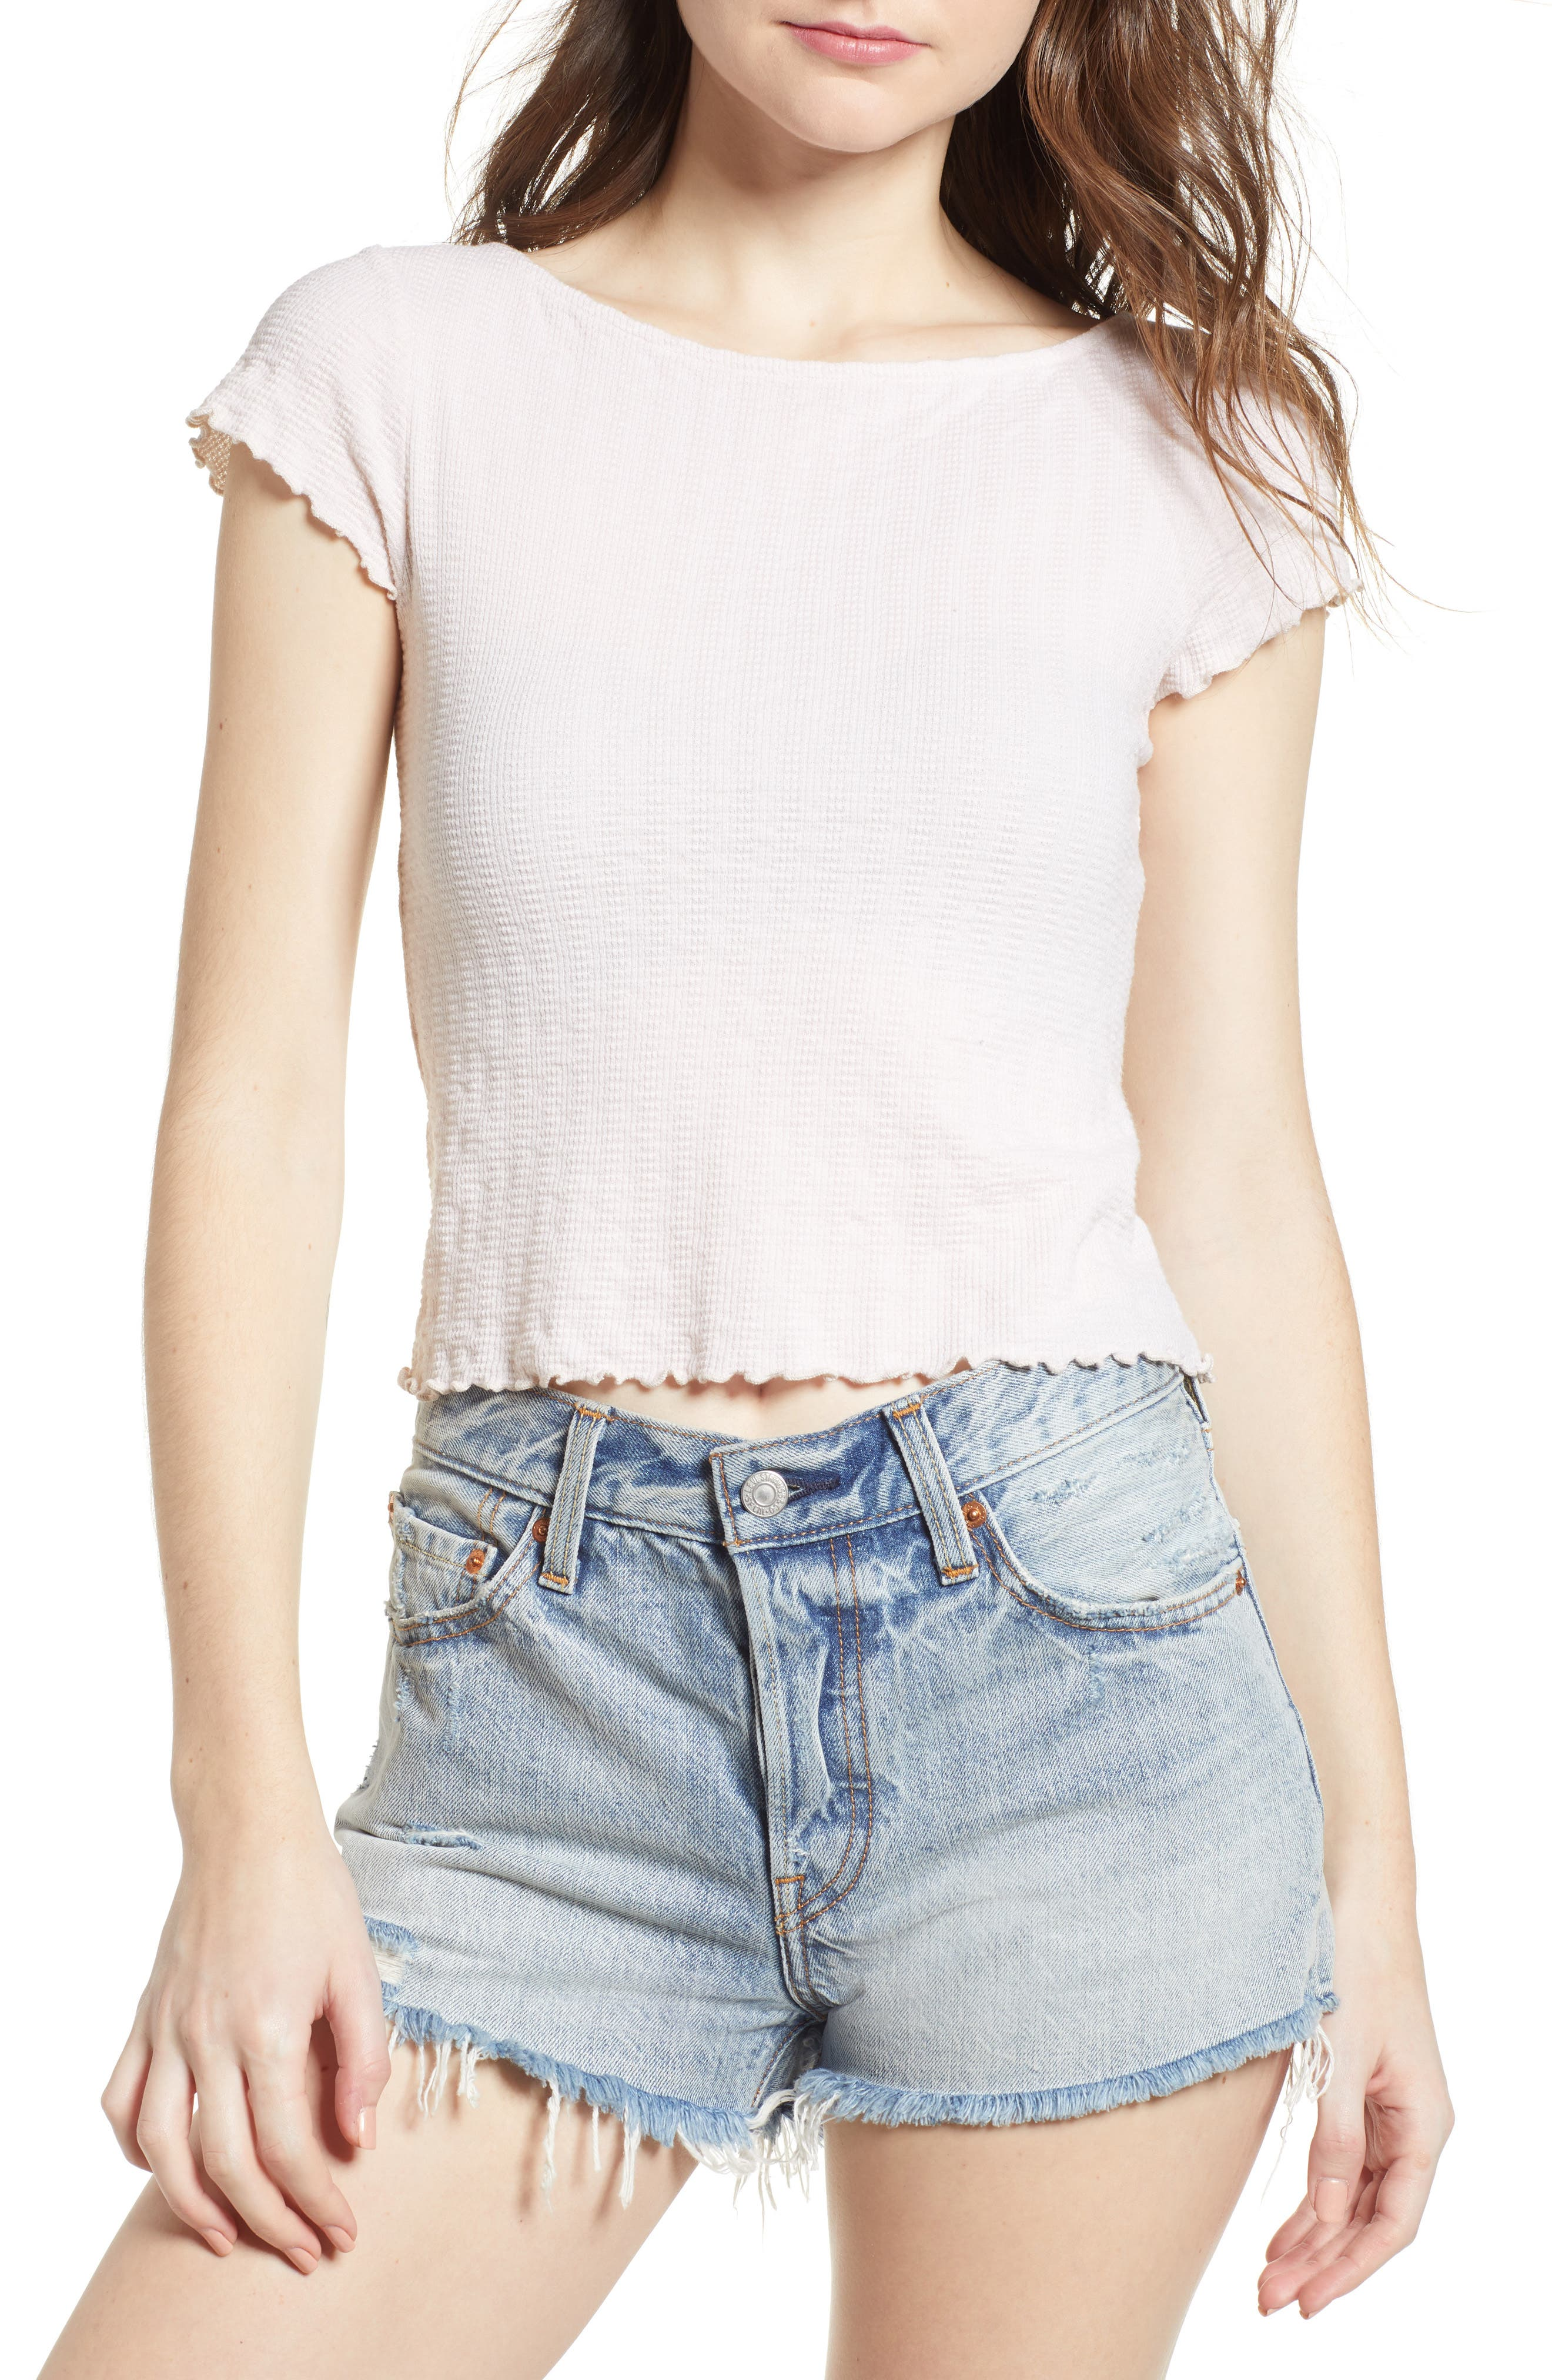 PST BY PROJECT SOCIAL T Lettuce Edge Crop Tee, Main, color, 900